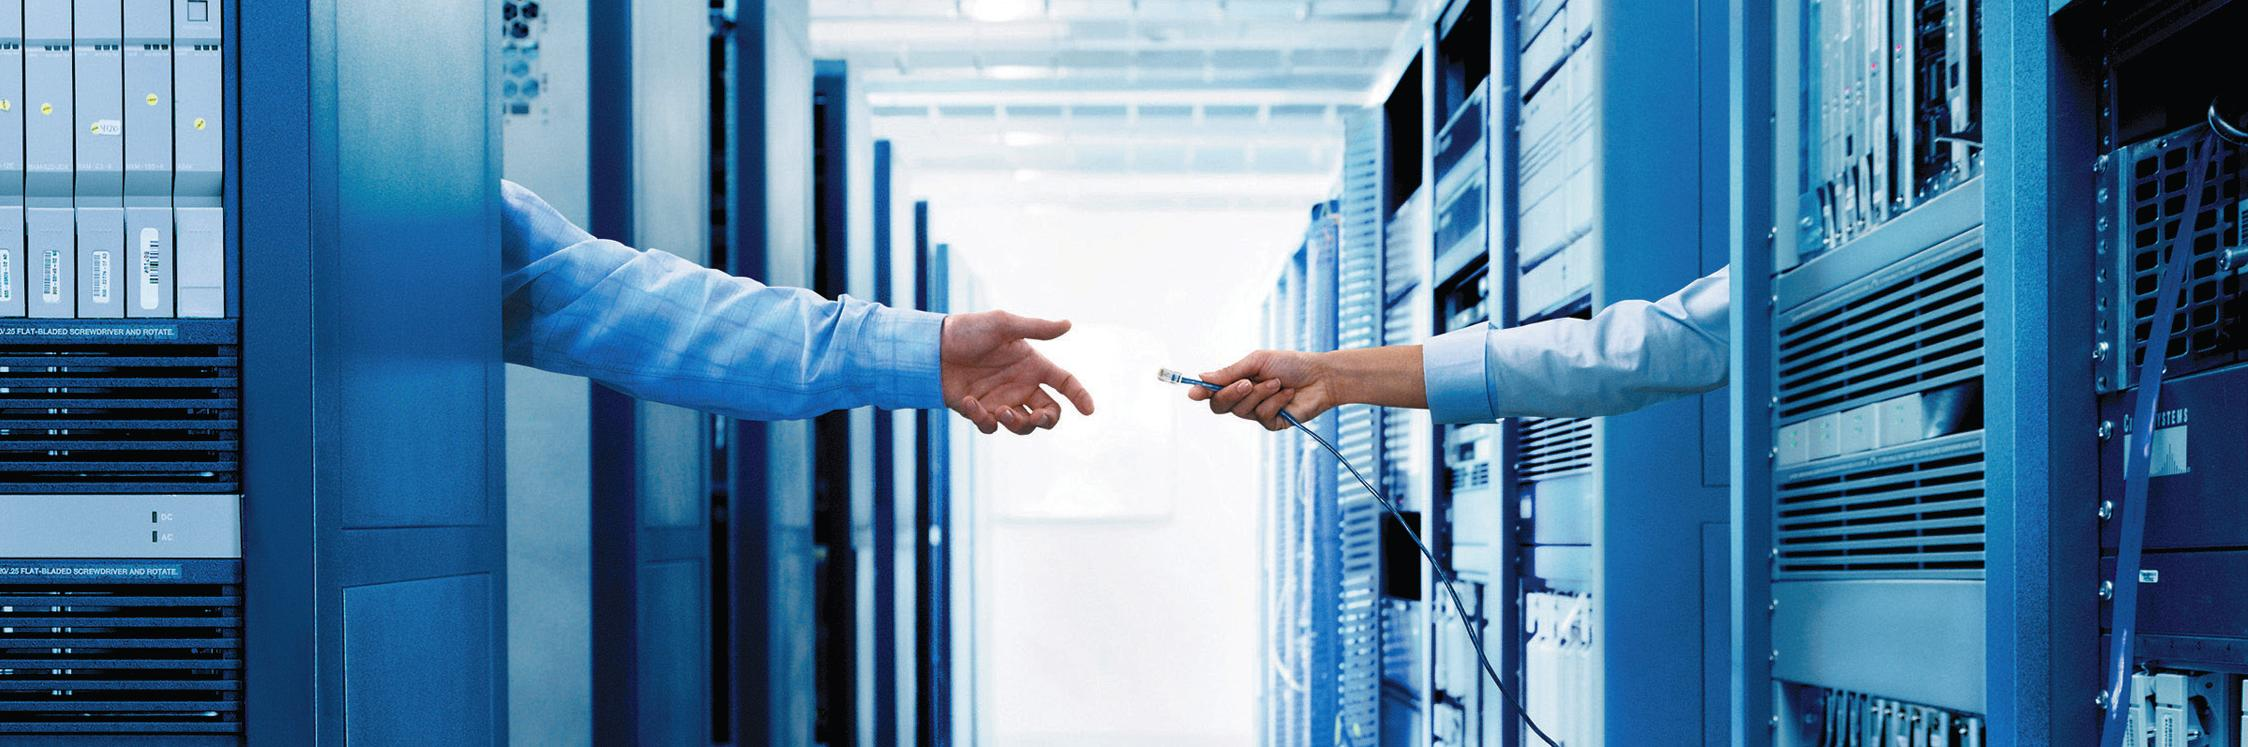 Cisco Network Operations Automation Service Cisco Systems